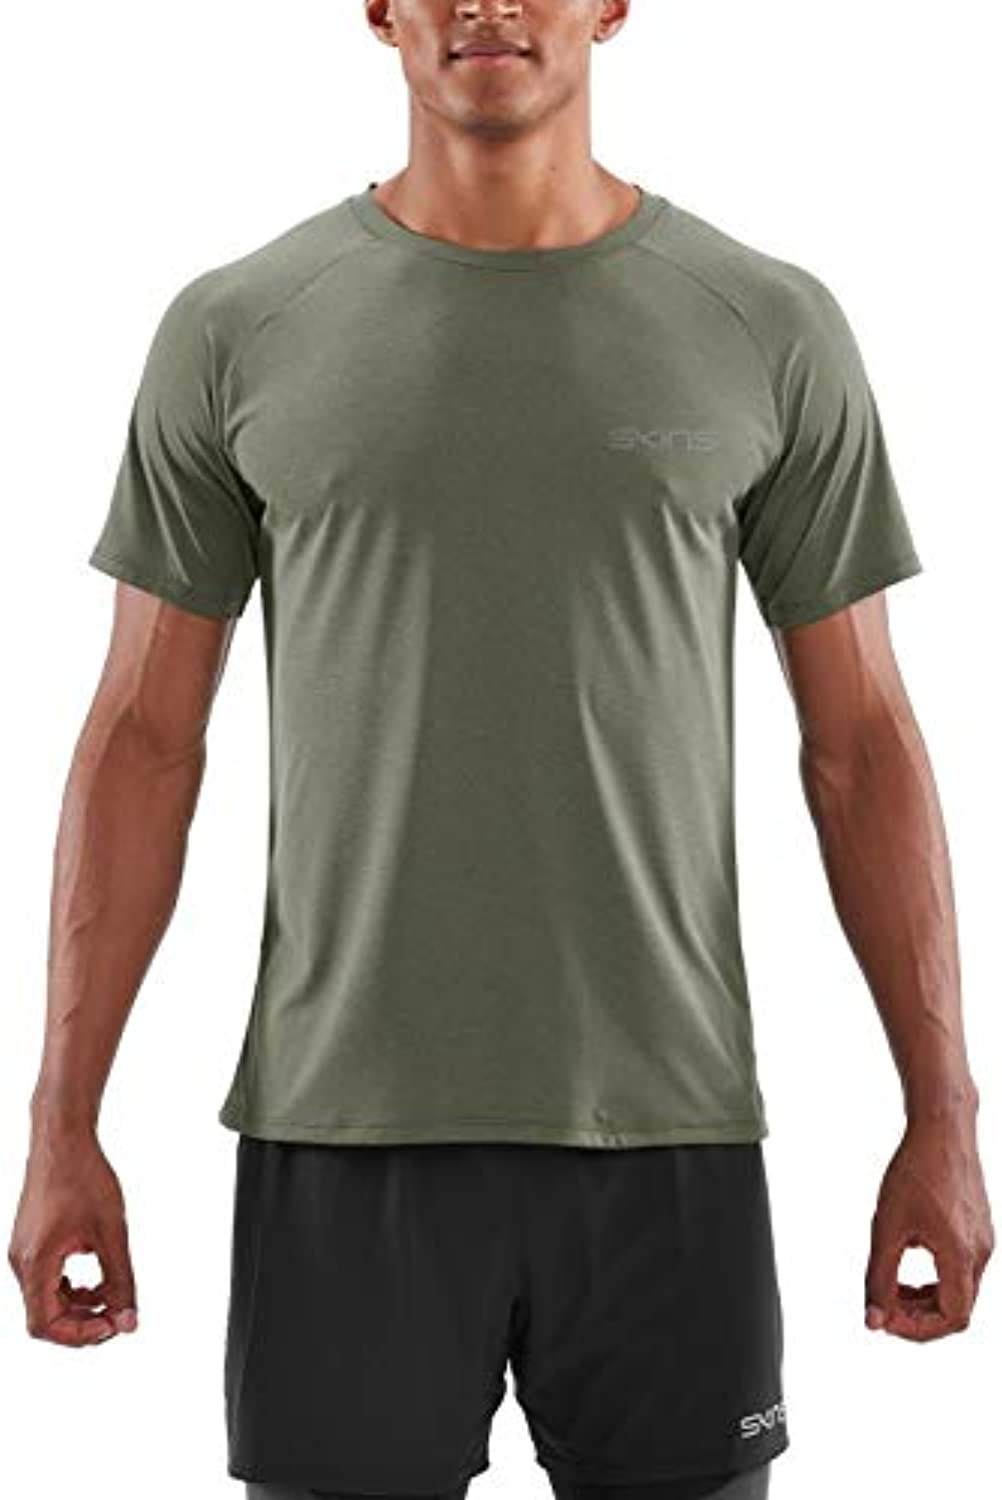 Skins Mens Short Sleeve SP00791213009XL, Utility Marle, X-Large